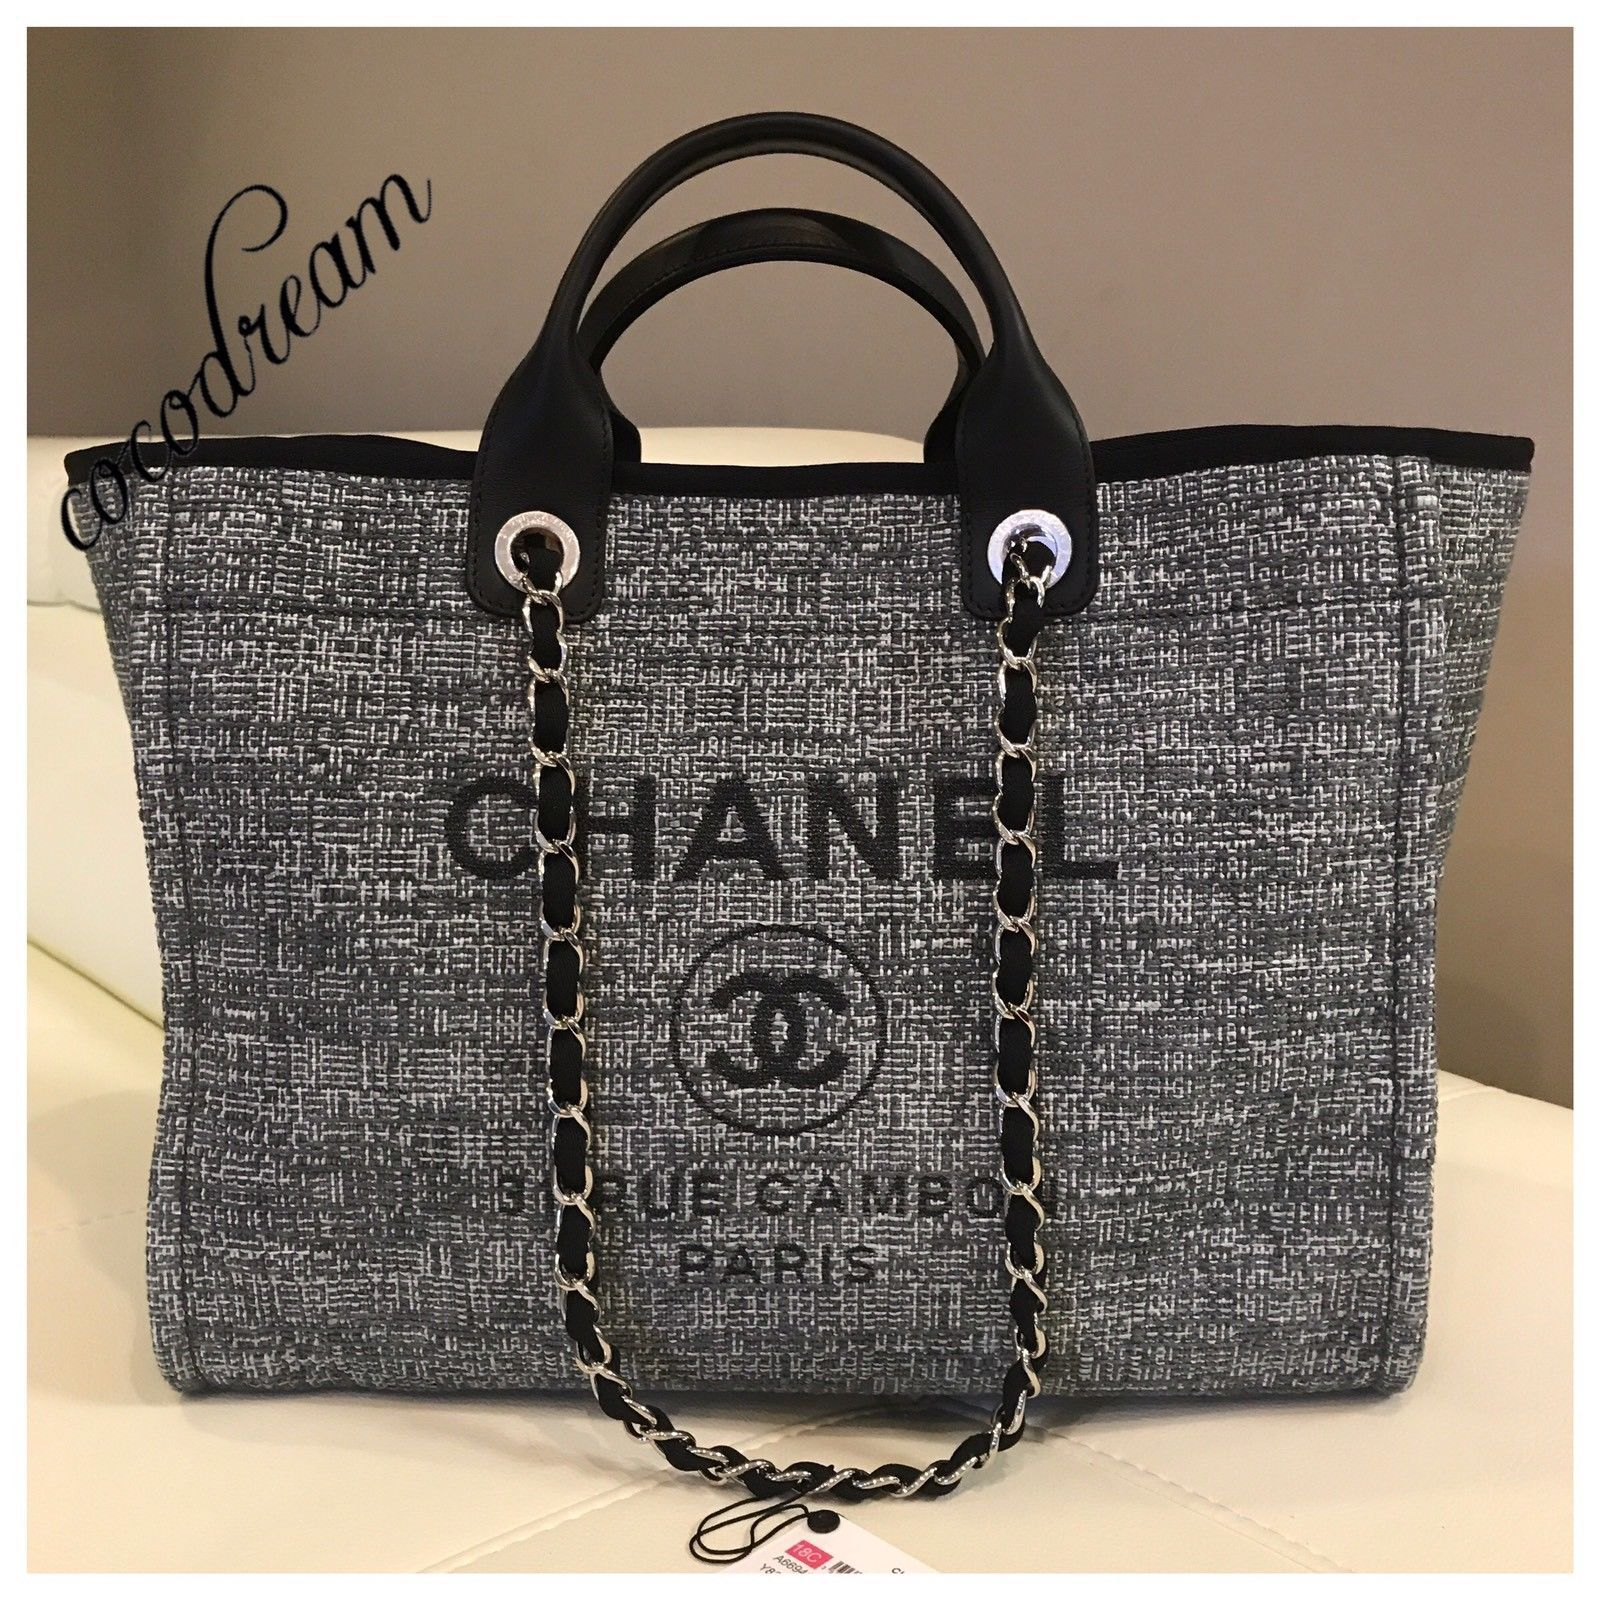 7ad665a672a4 This gorgeous bag is a classic deauville tote bag in Gary charcoal color  with black timming and black Metallic CHANEL AND CC ...